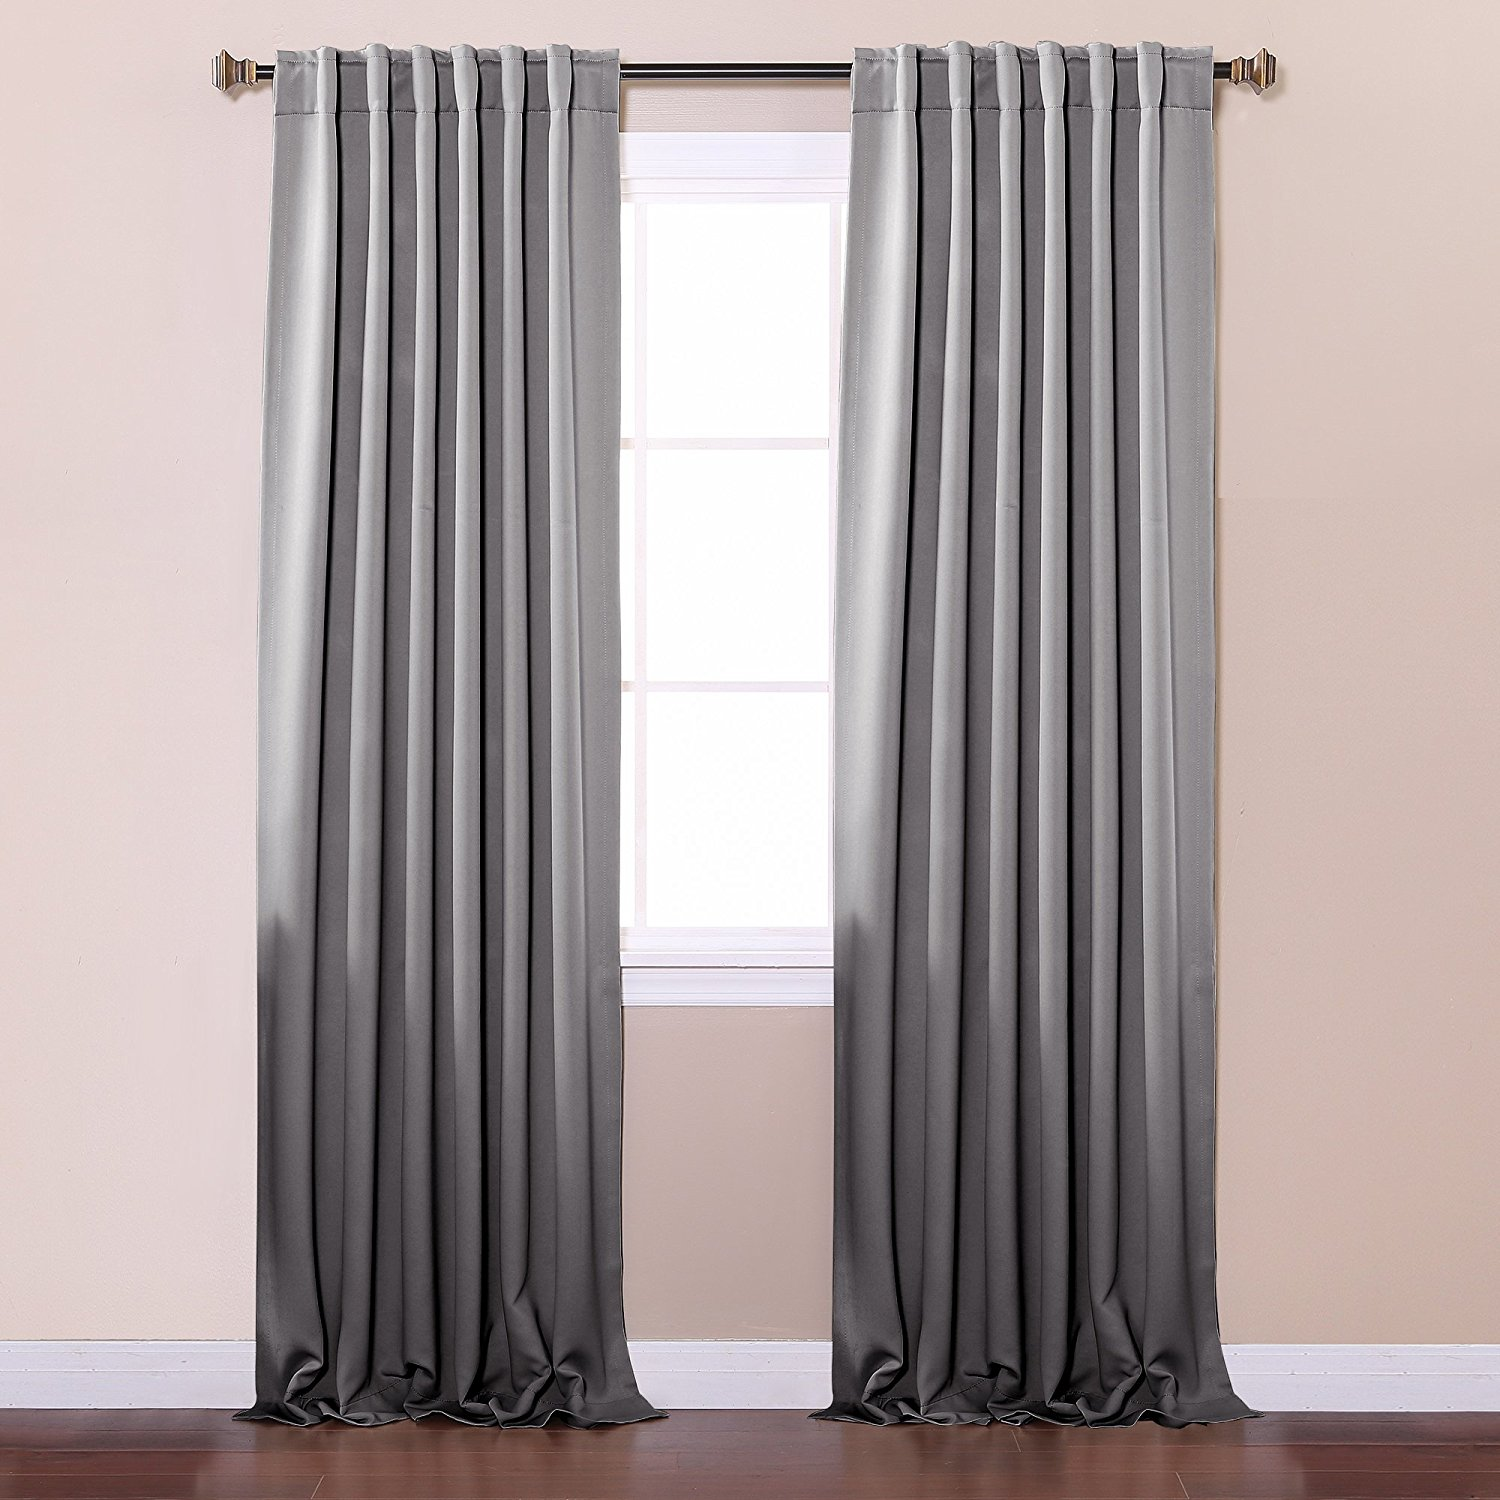 Unique thermal blackout curtains amazon.com: best home fashion thermal insulated blackout curtains - back  tab/ rod ynmshwl